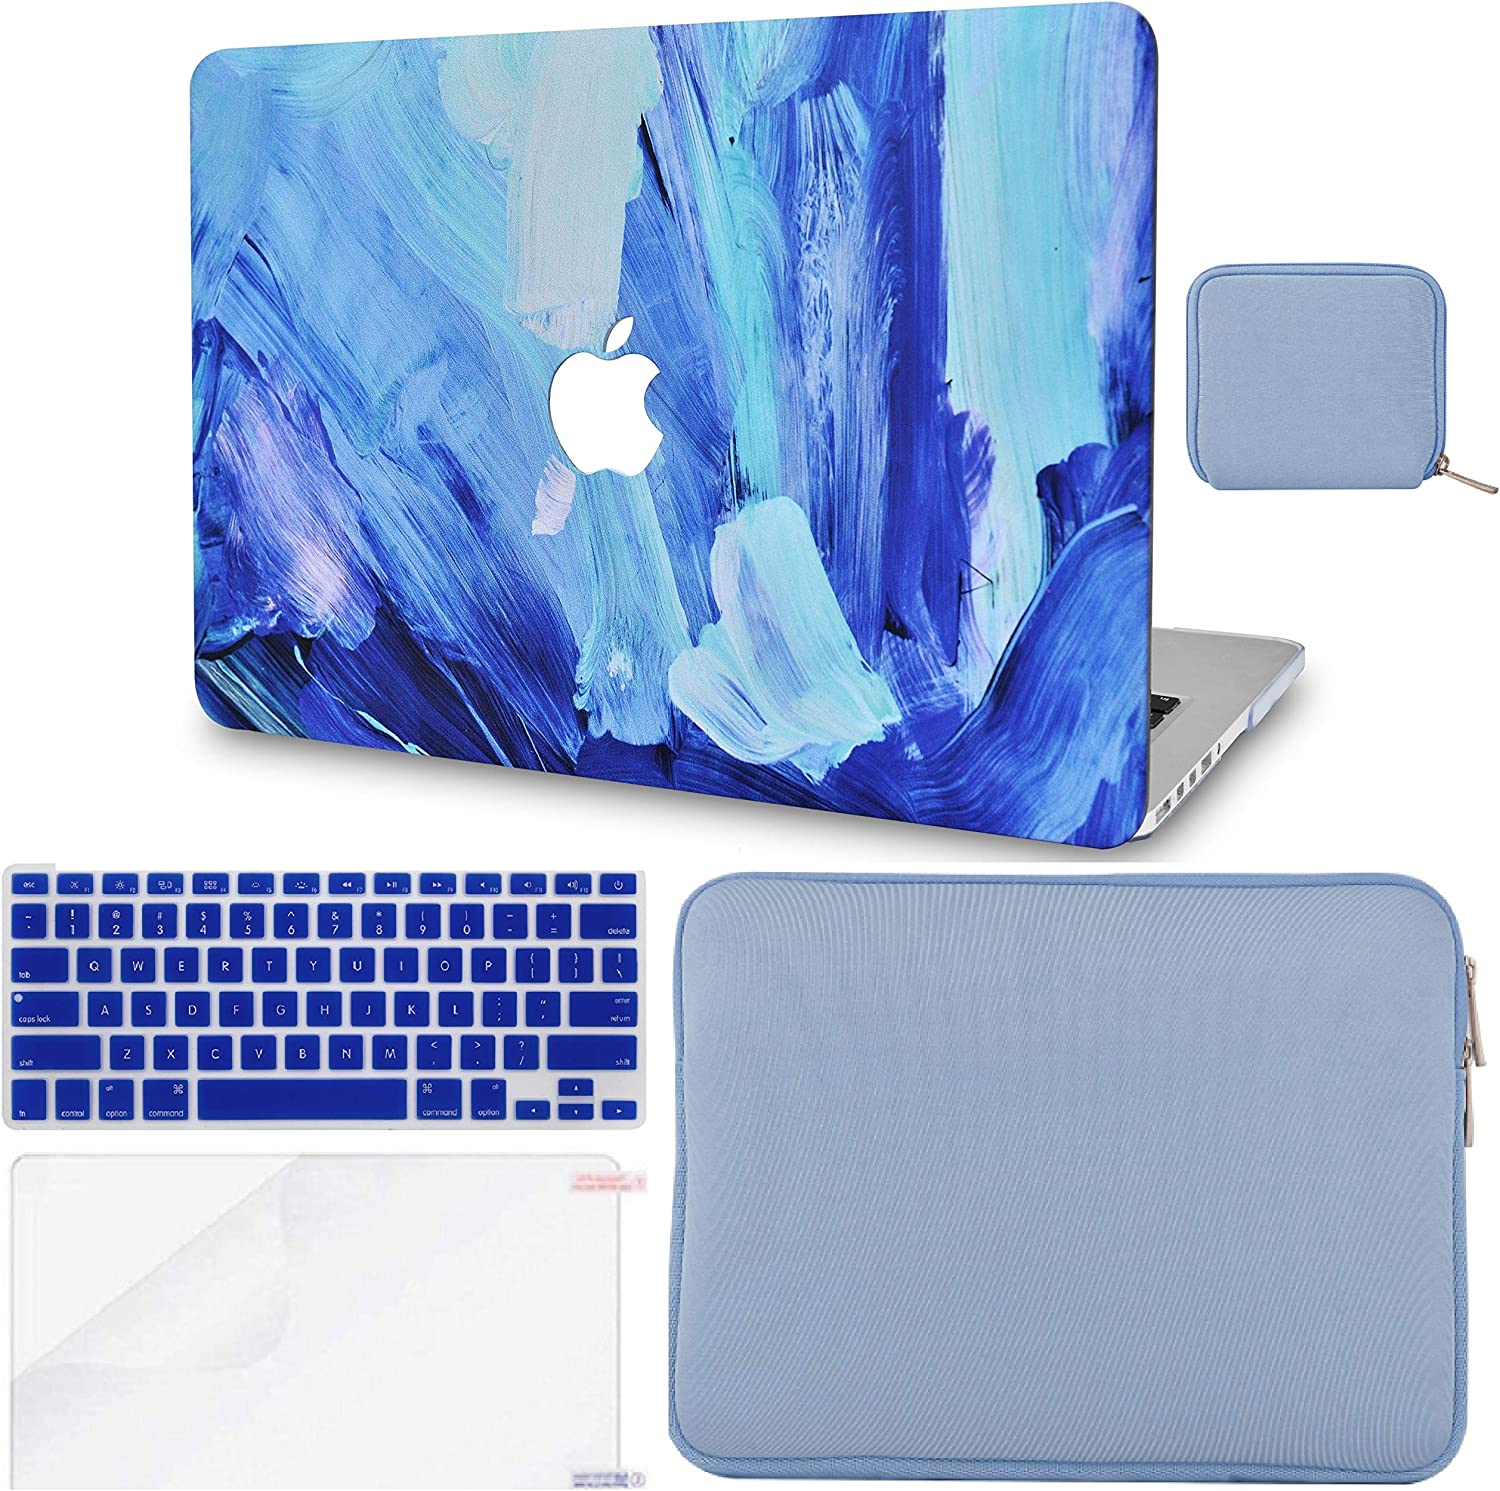 LuvCase 5in1 LaptopCase forMacBookAir 13 Inch(Touch ID)(2020) A2179 Retina Display HardShell Cover, Slim Sleeve, Pouch, Keyboard Cover & Screen Protector (Oil Paint 5)